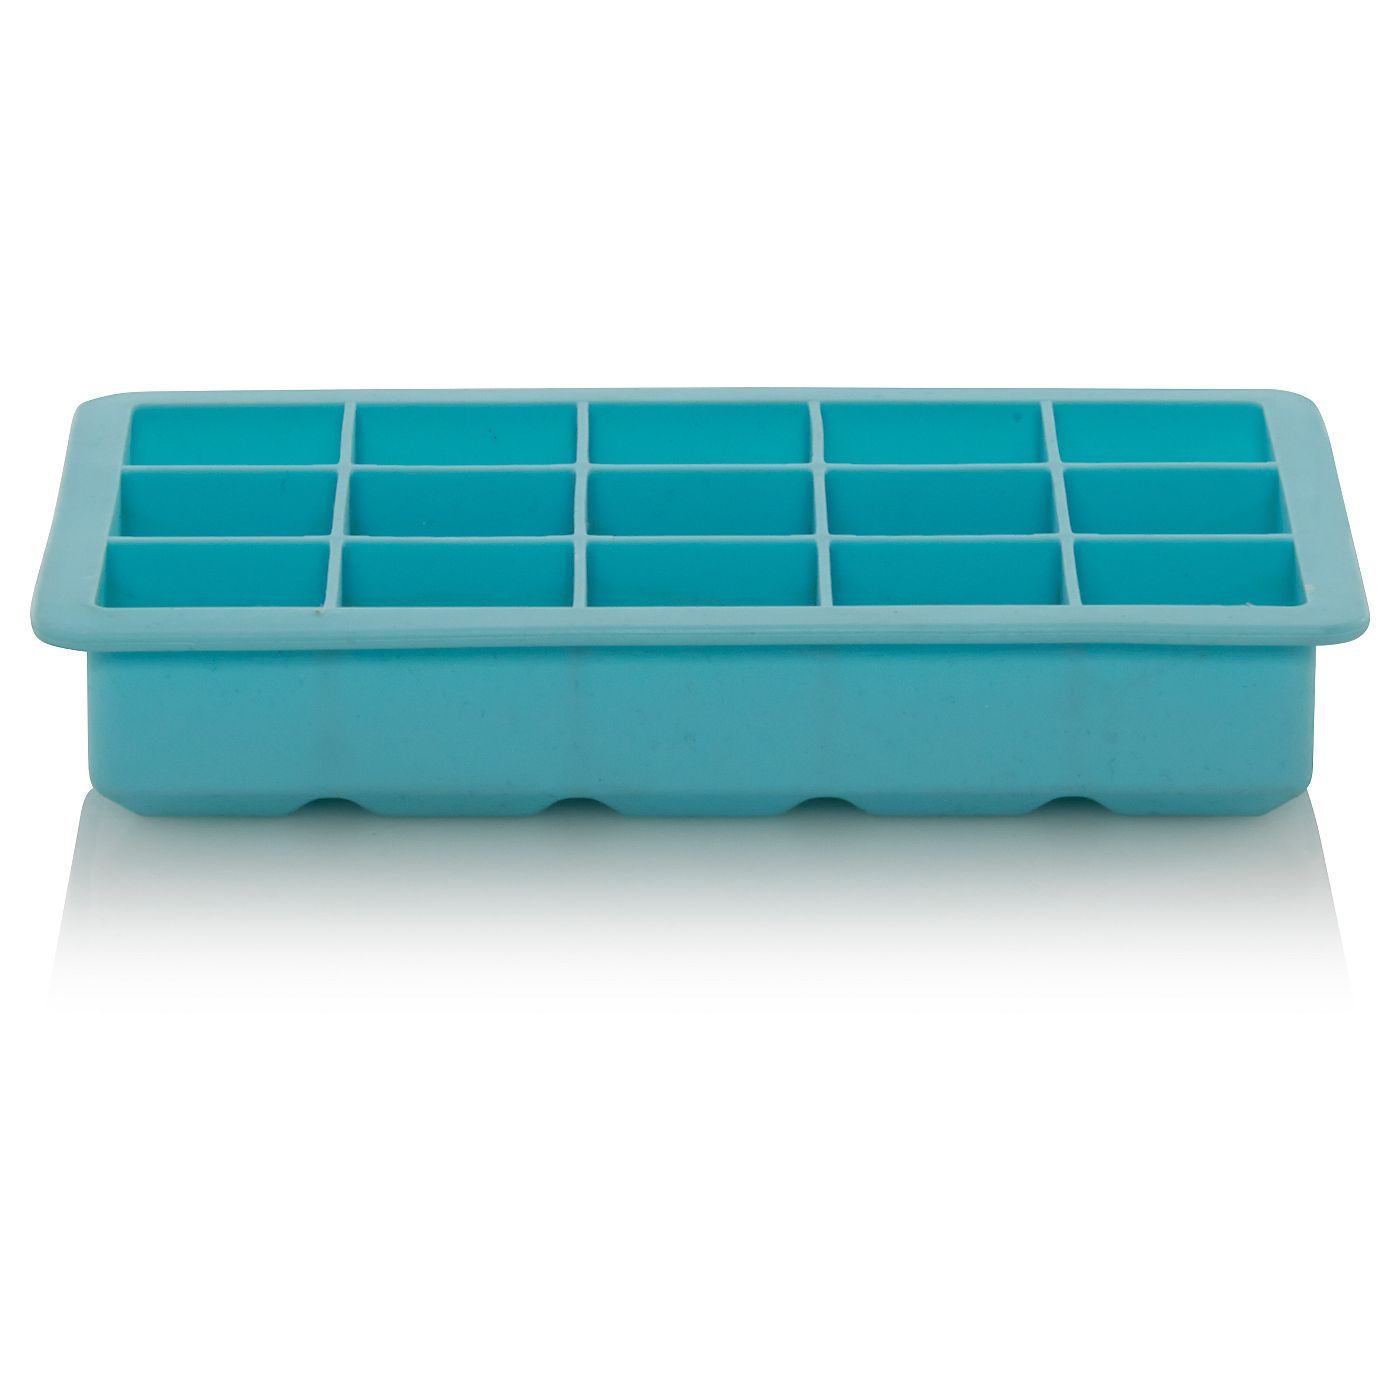 George Home Silicone Ice Cube Tray Formica Blue | View all Kitchen ...